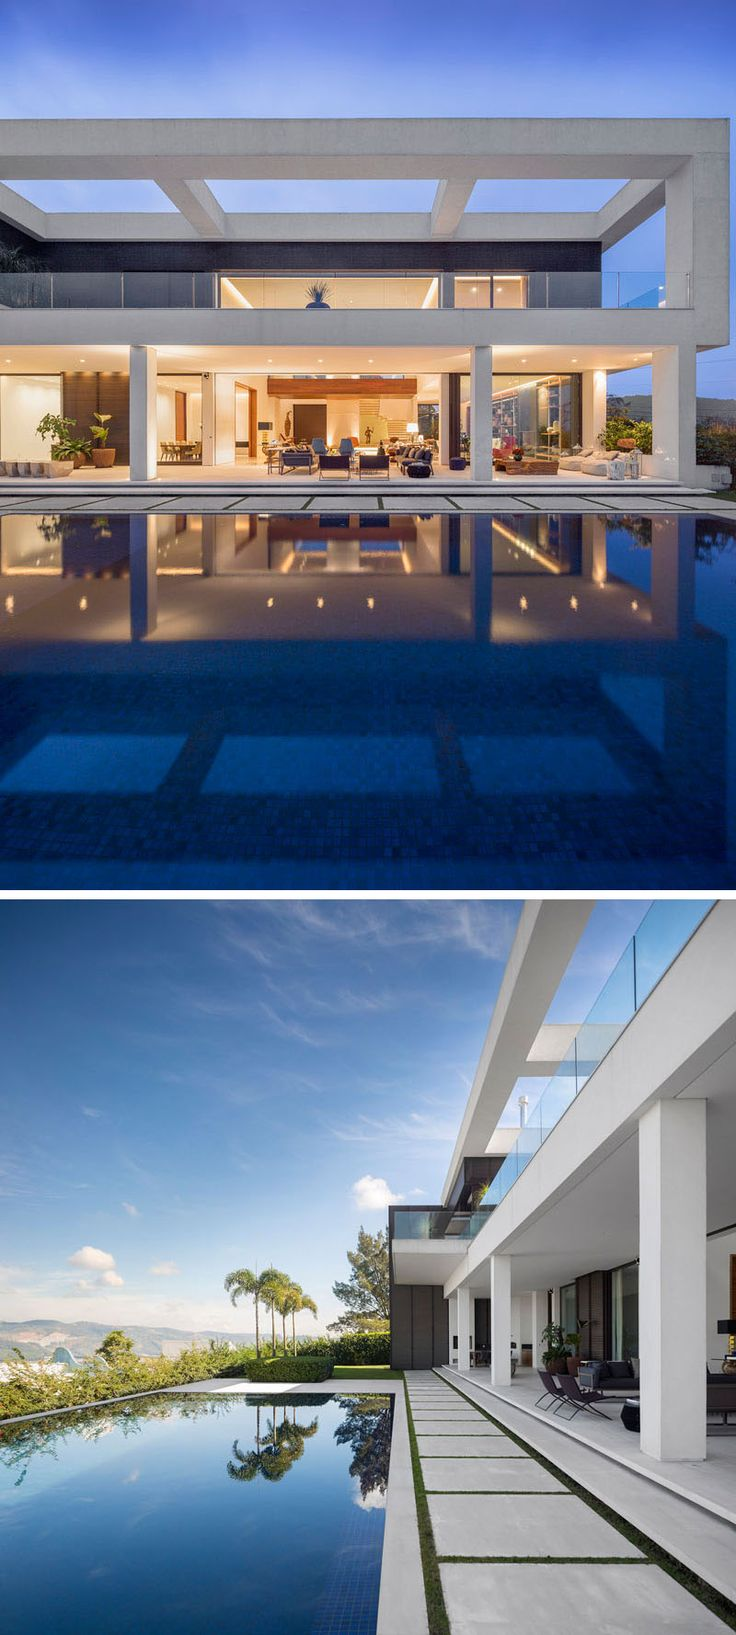 This large swimming pool and outdoor area, make it easy to relax on a hot day and entertain at night.